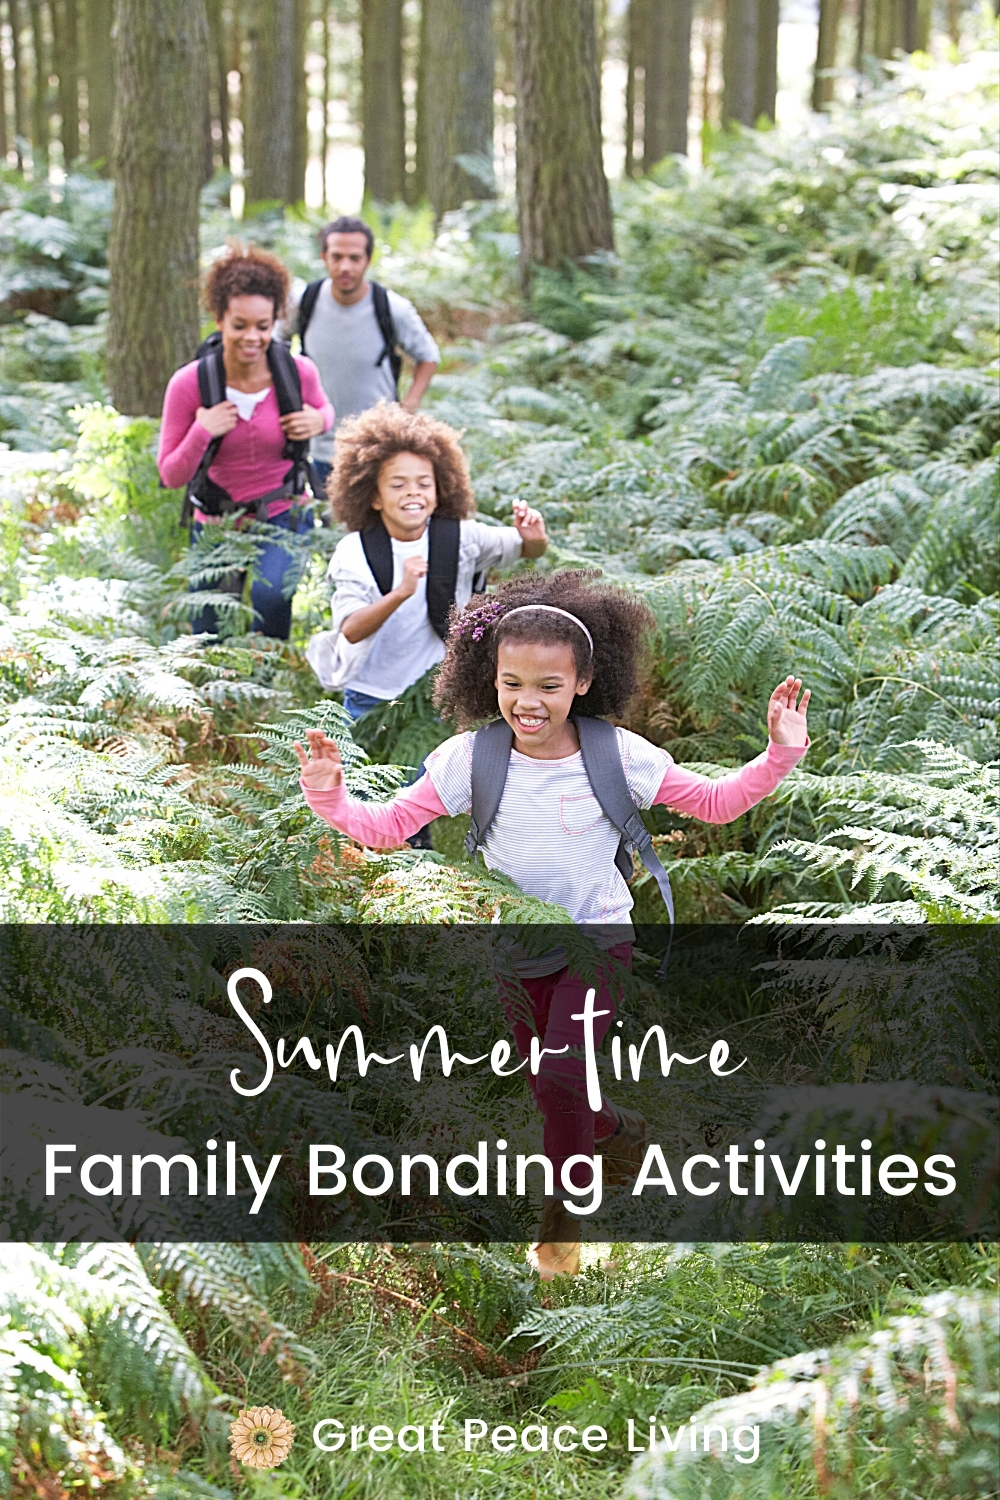 Summertime Family Bonding Activities | Great Peace Living #familybonding #summertime #activities #family